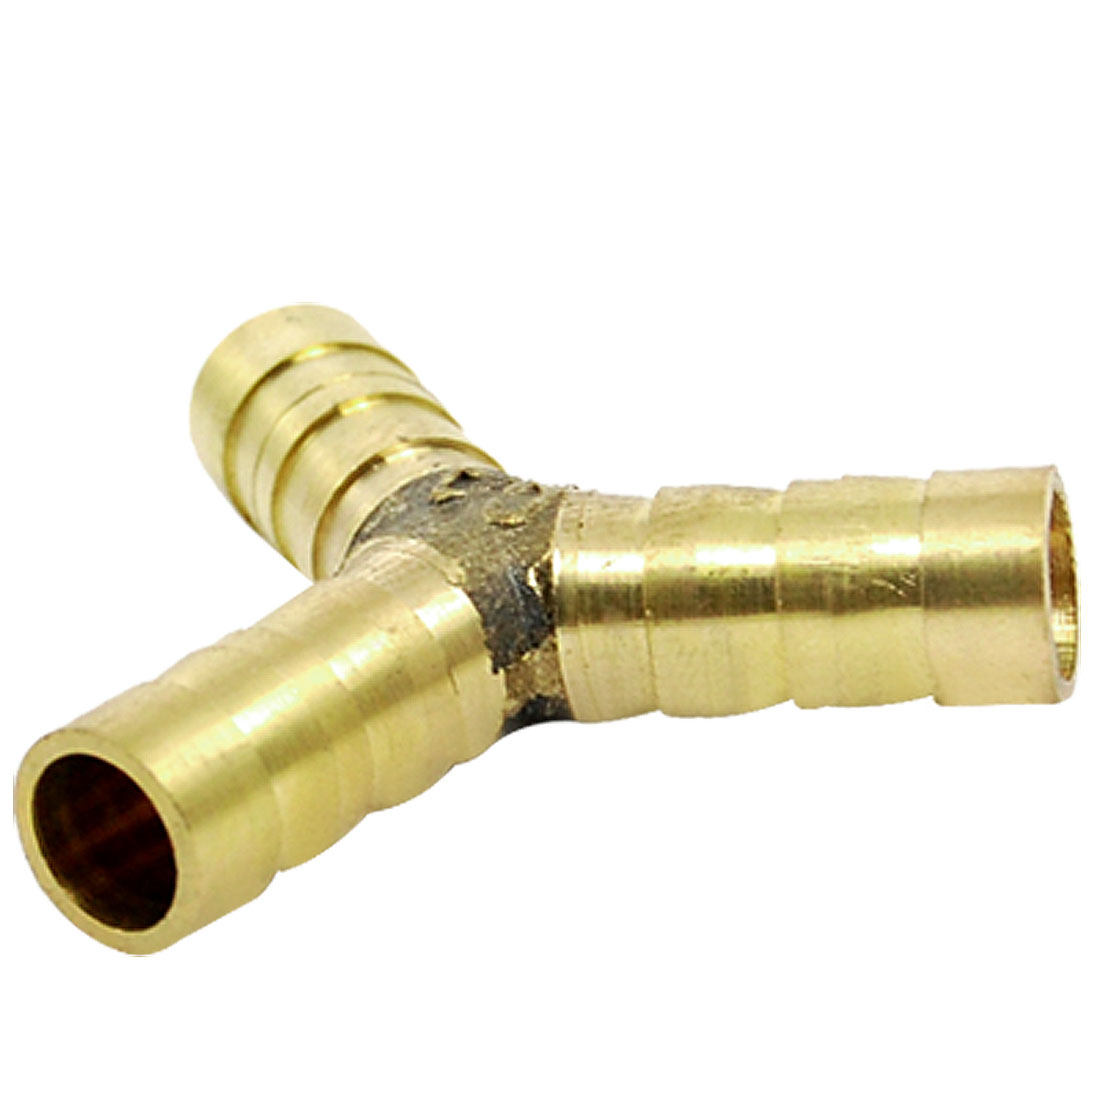 10mm Brass Barbed 3 Way Y Shaped Fuel Hose Connector